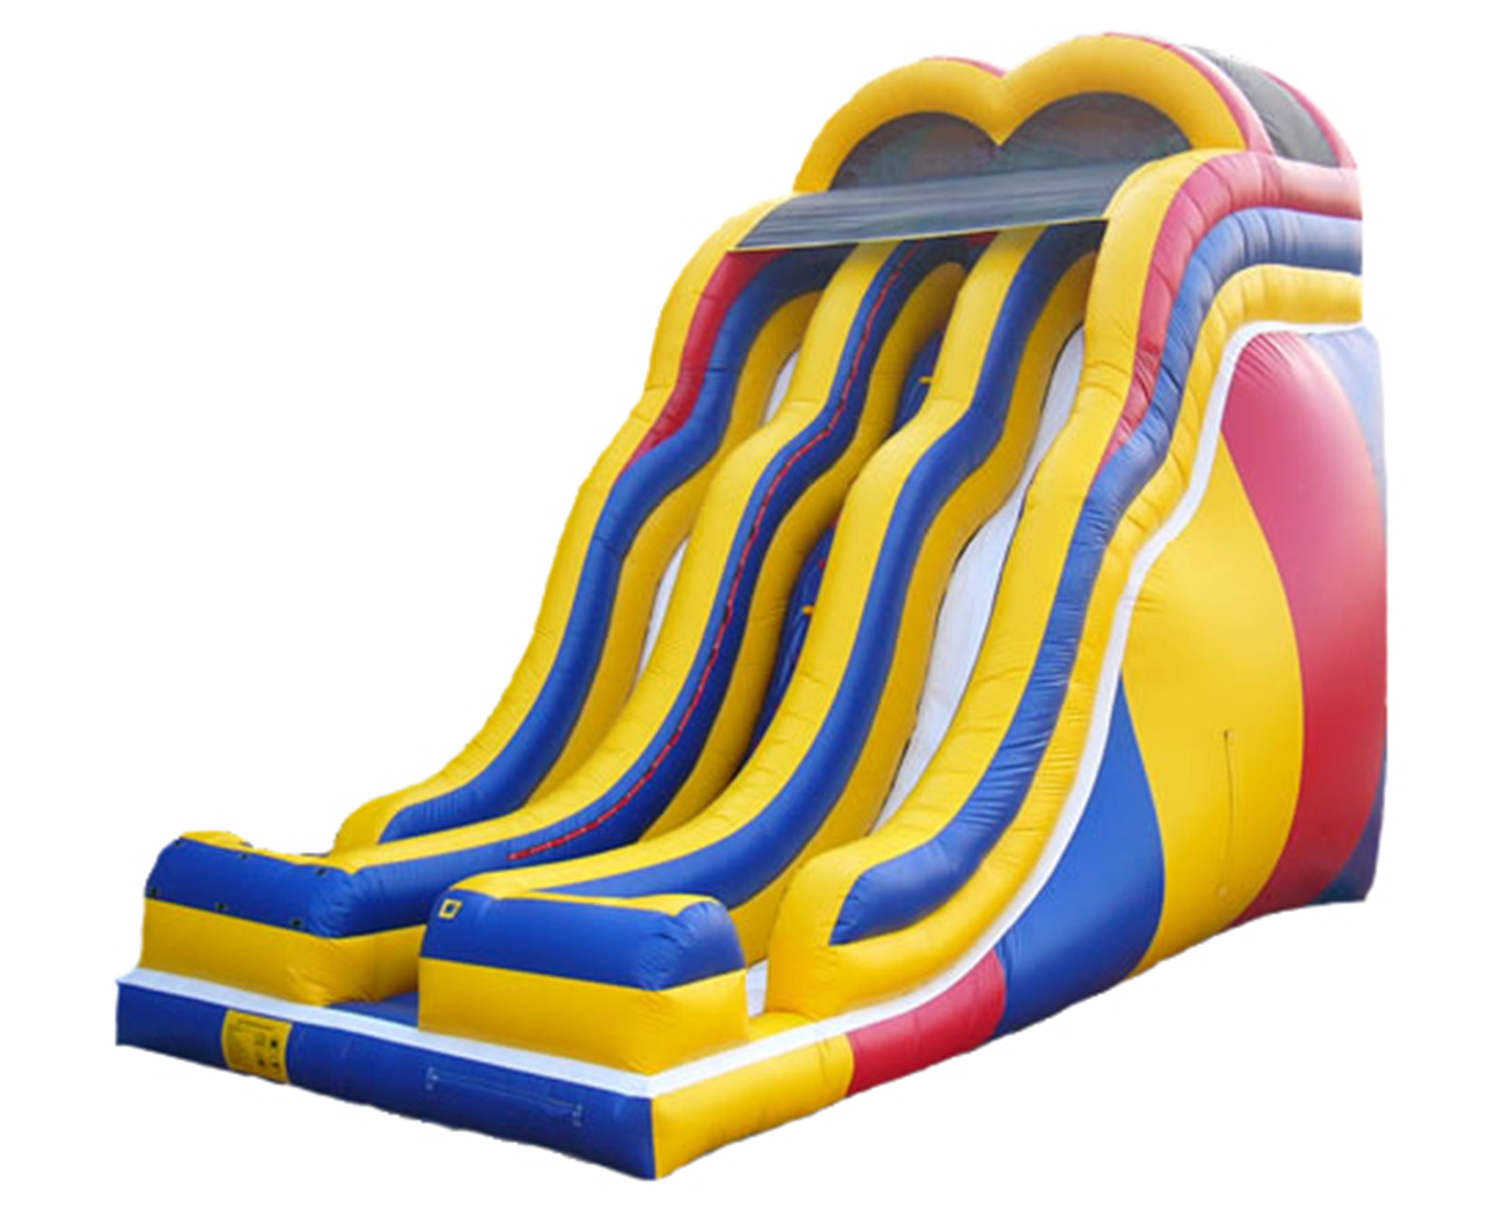 24' Double Lane Double Wave Slide - $595.00 ALL DAY RENTAL